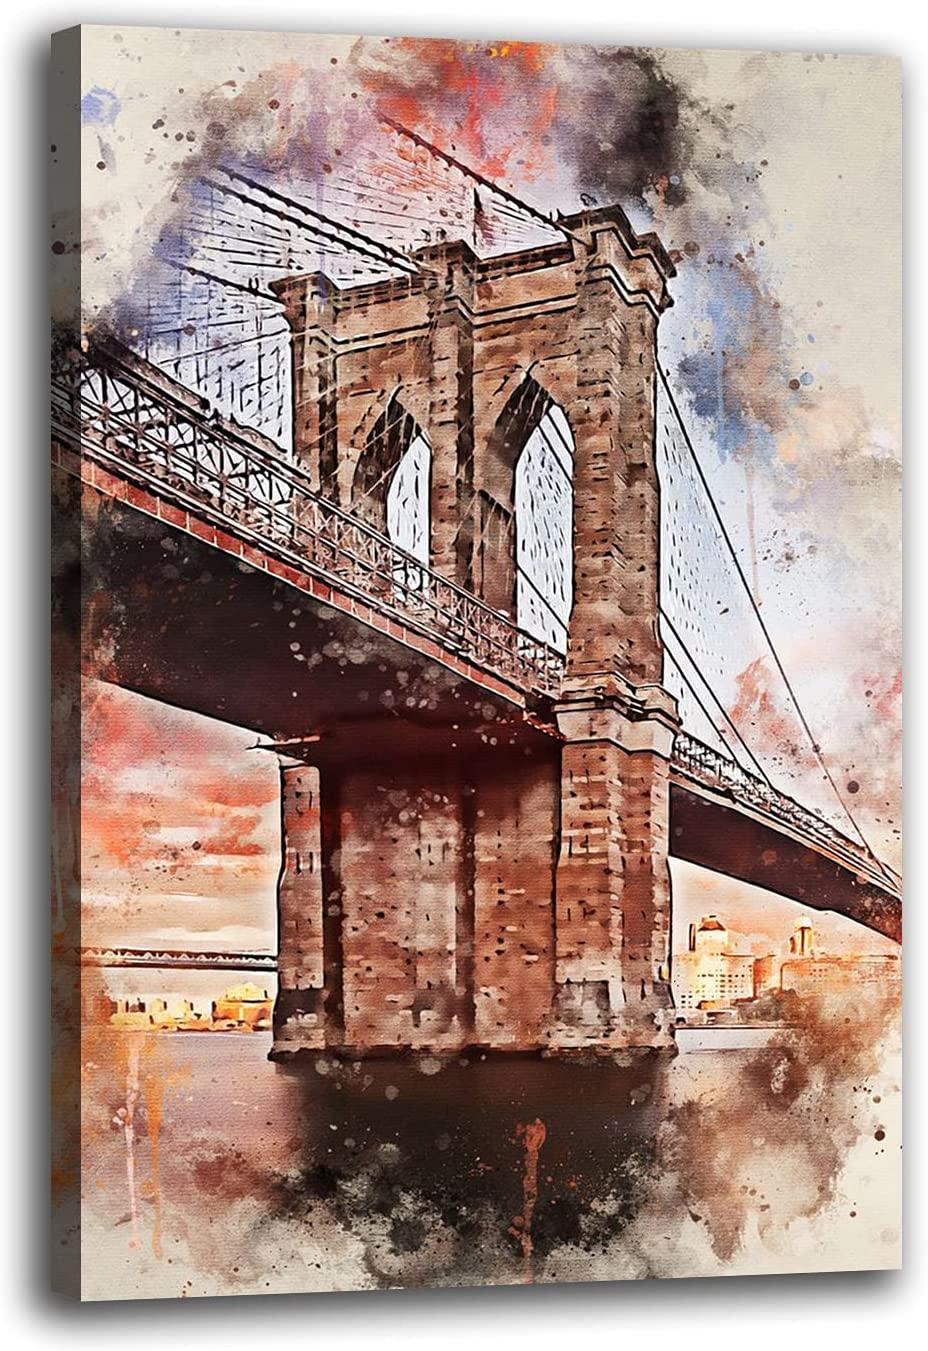 RSBCSHI New York in Watercolor Canvas Mall Ranking TOP14 Painting Decorative Poster